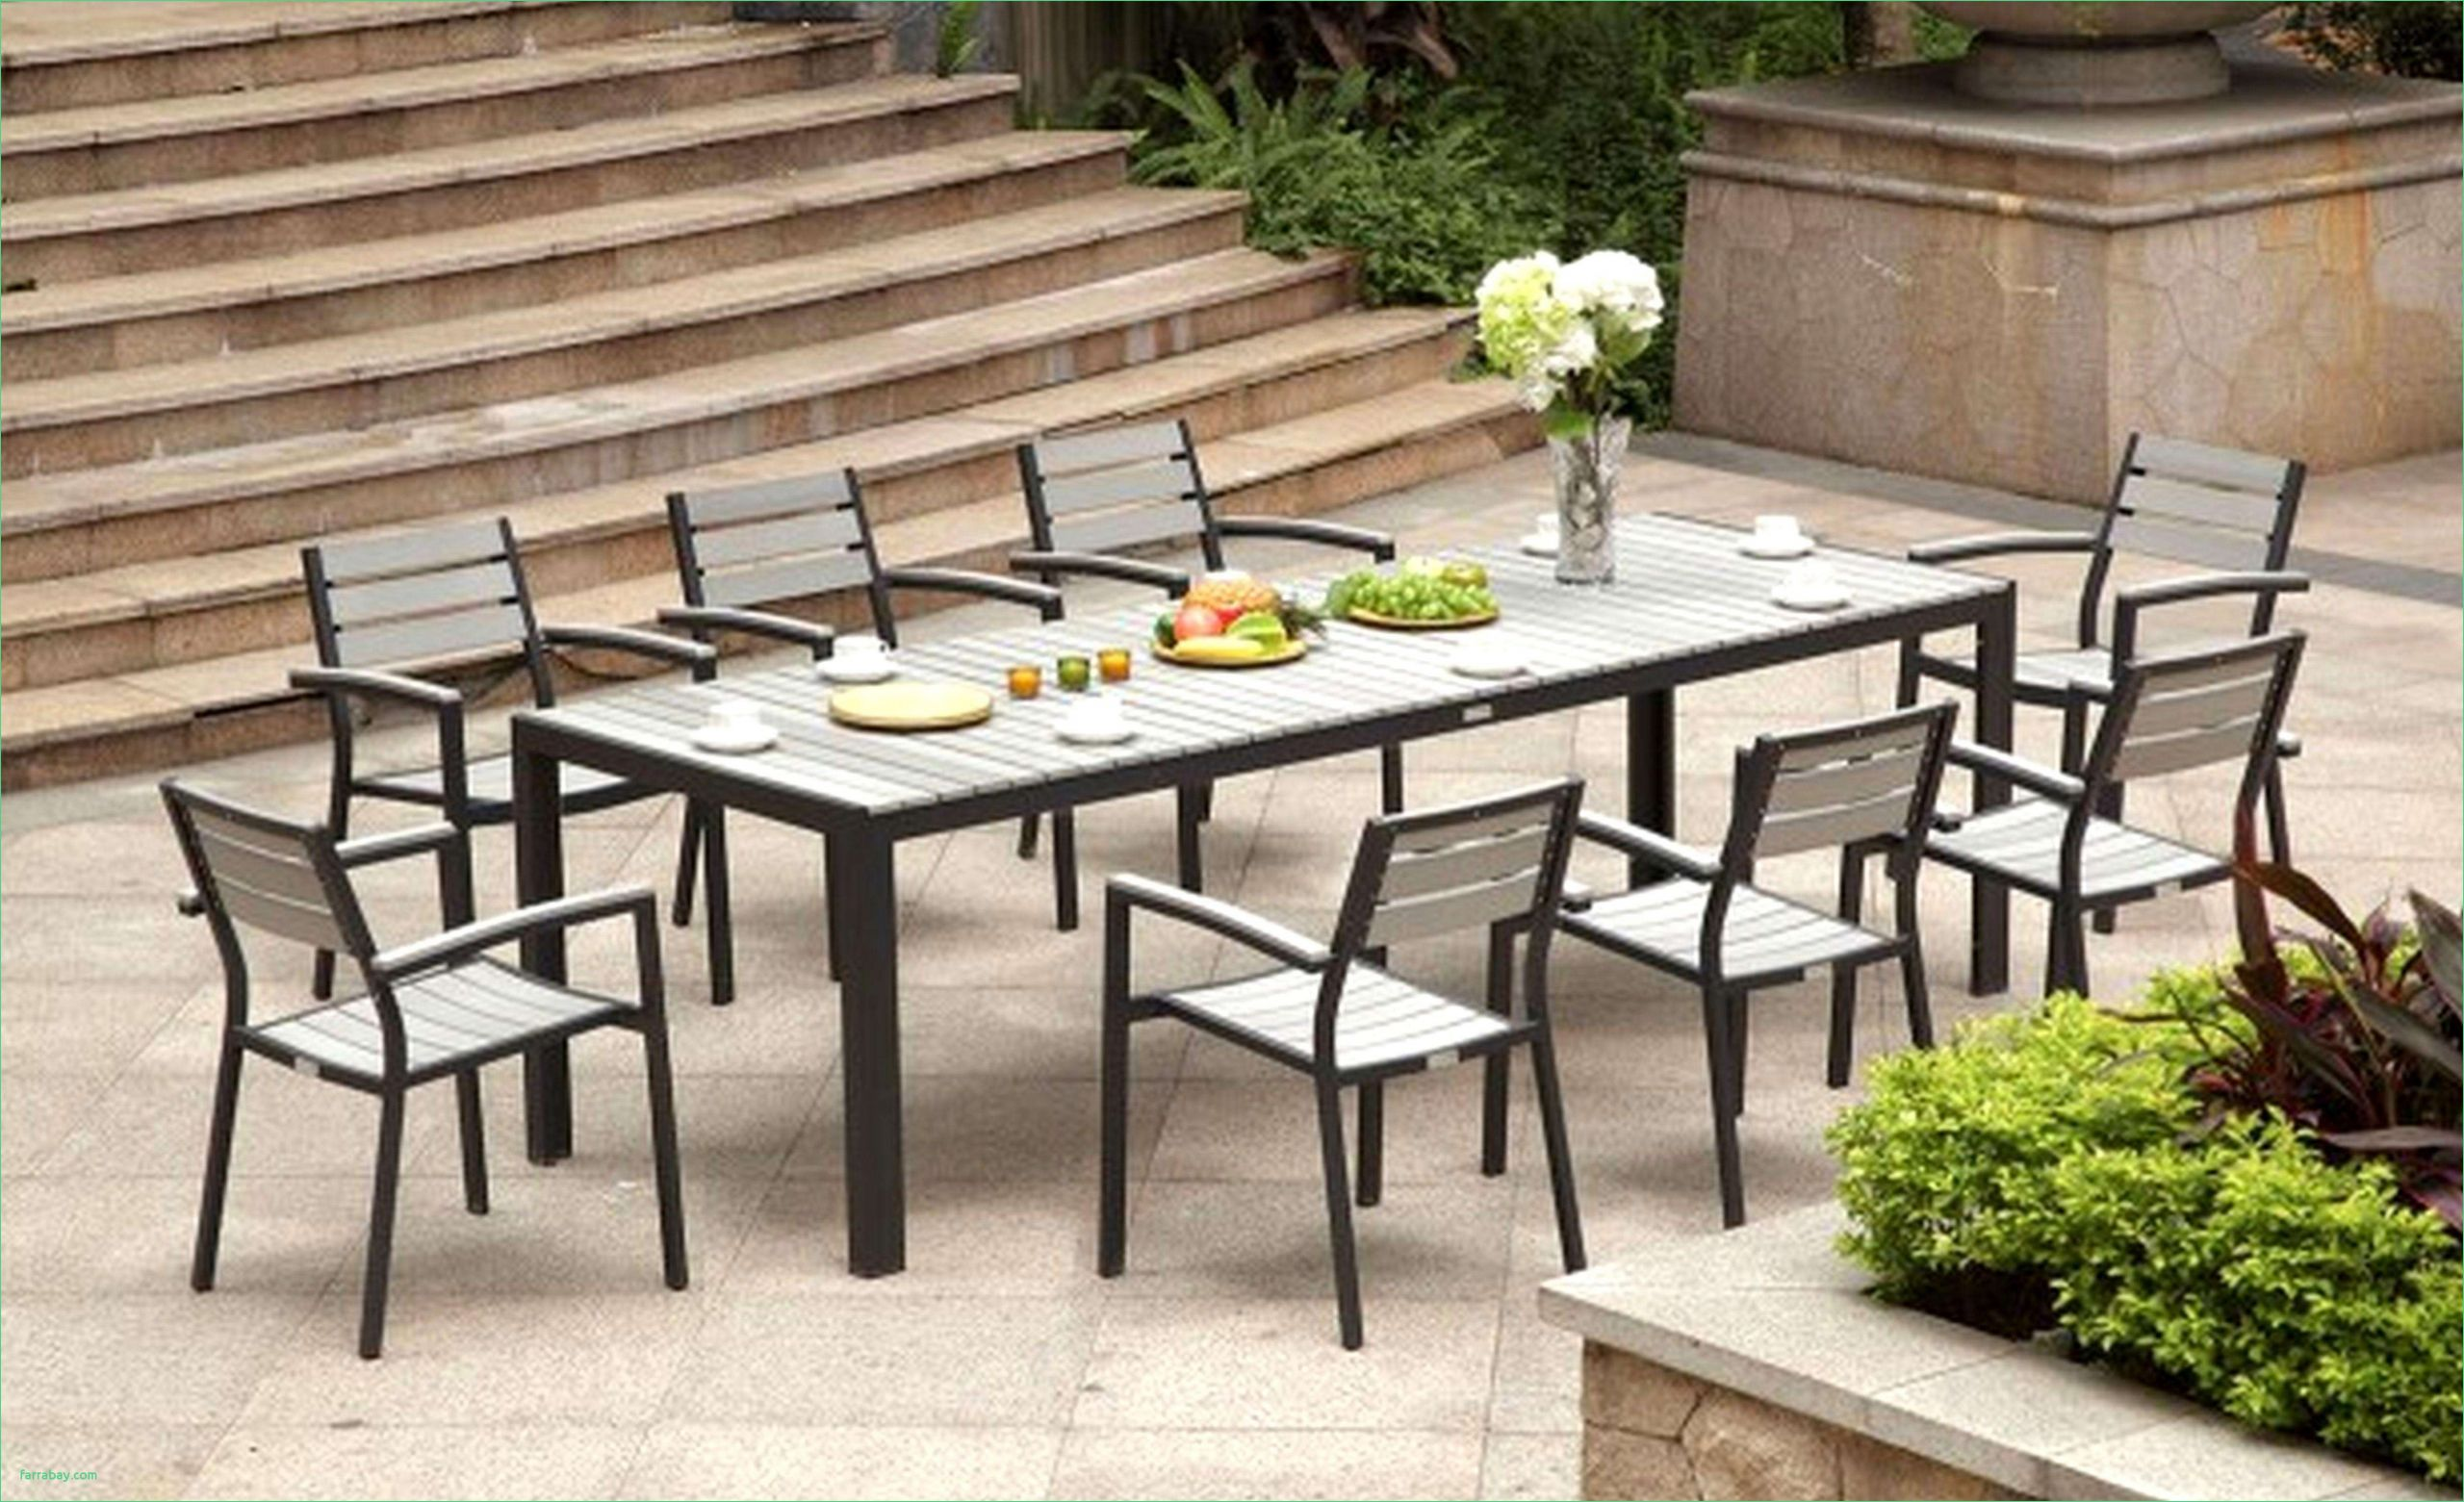 hesperide garden furniture new elegant outdoor table and chairs designsolutions usa of hesperide garden furniture